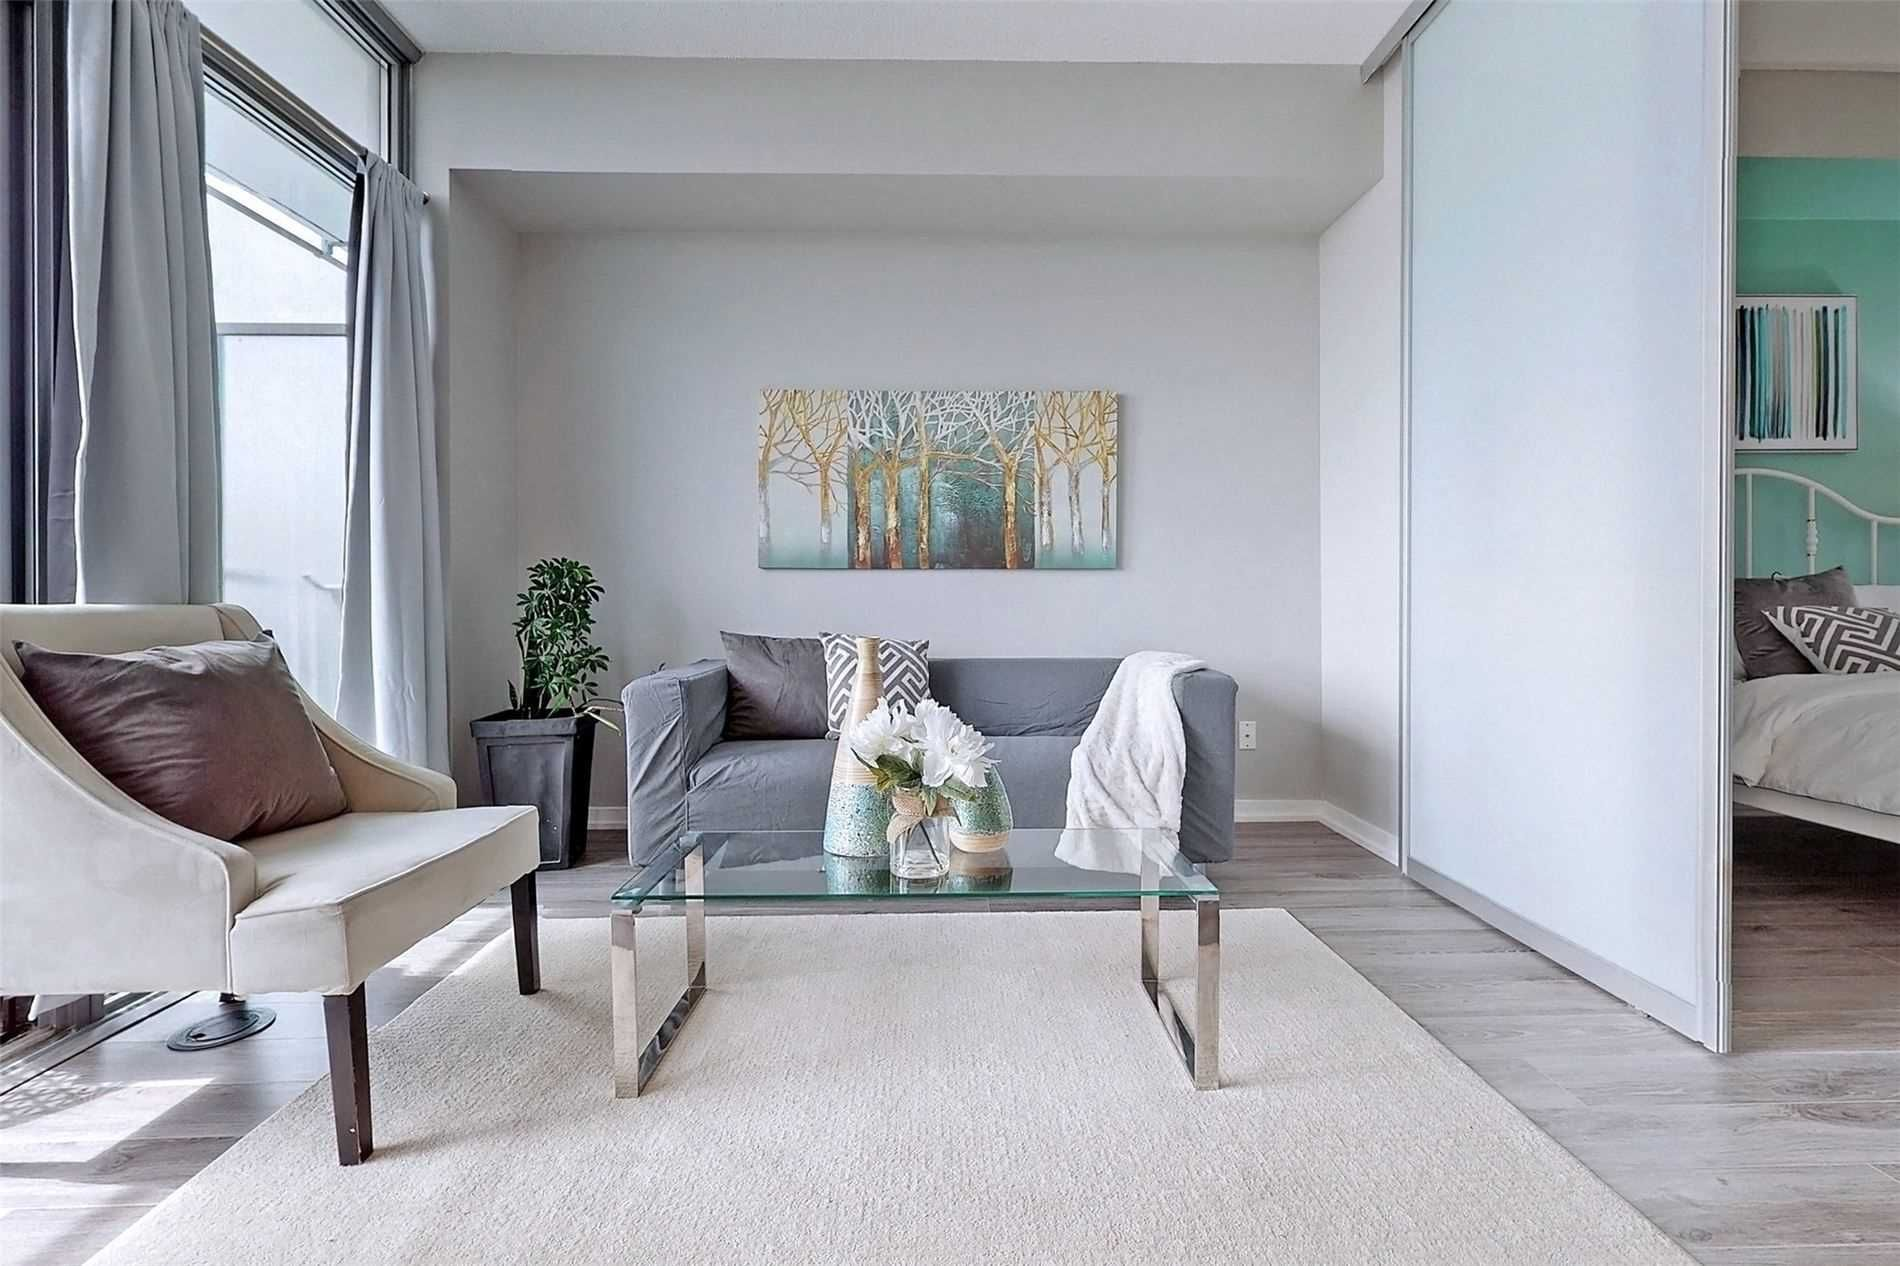 103 The Queensway Ave, unit 406 for sale in Toronto - image #2